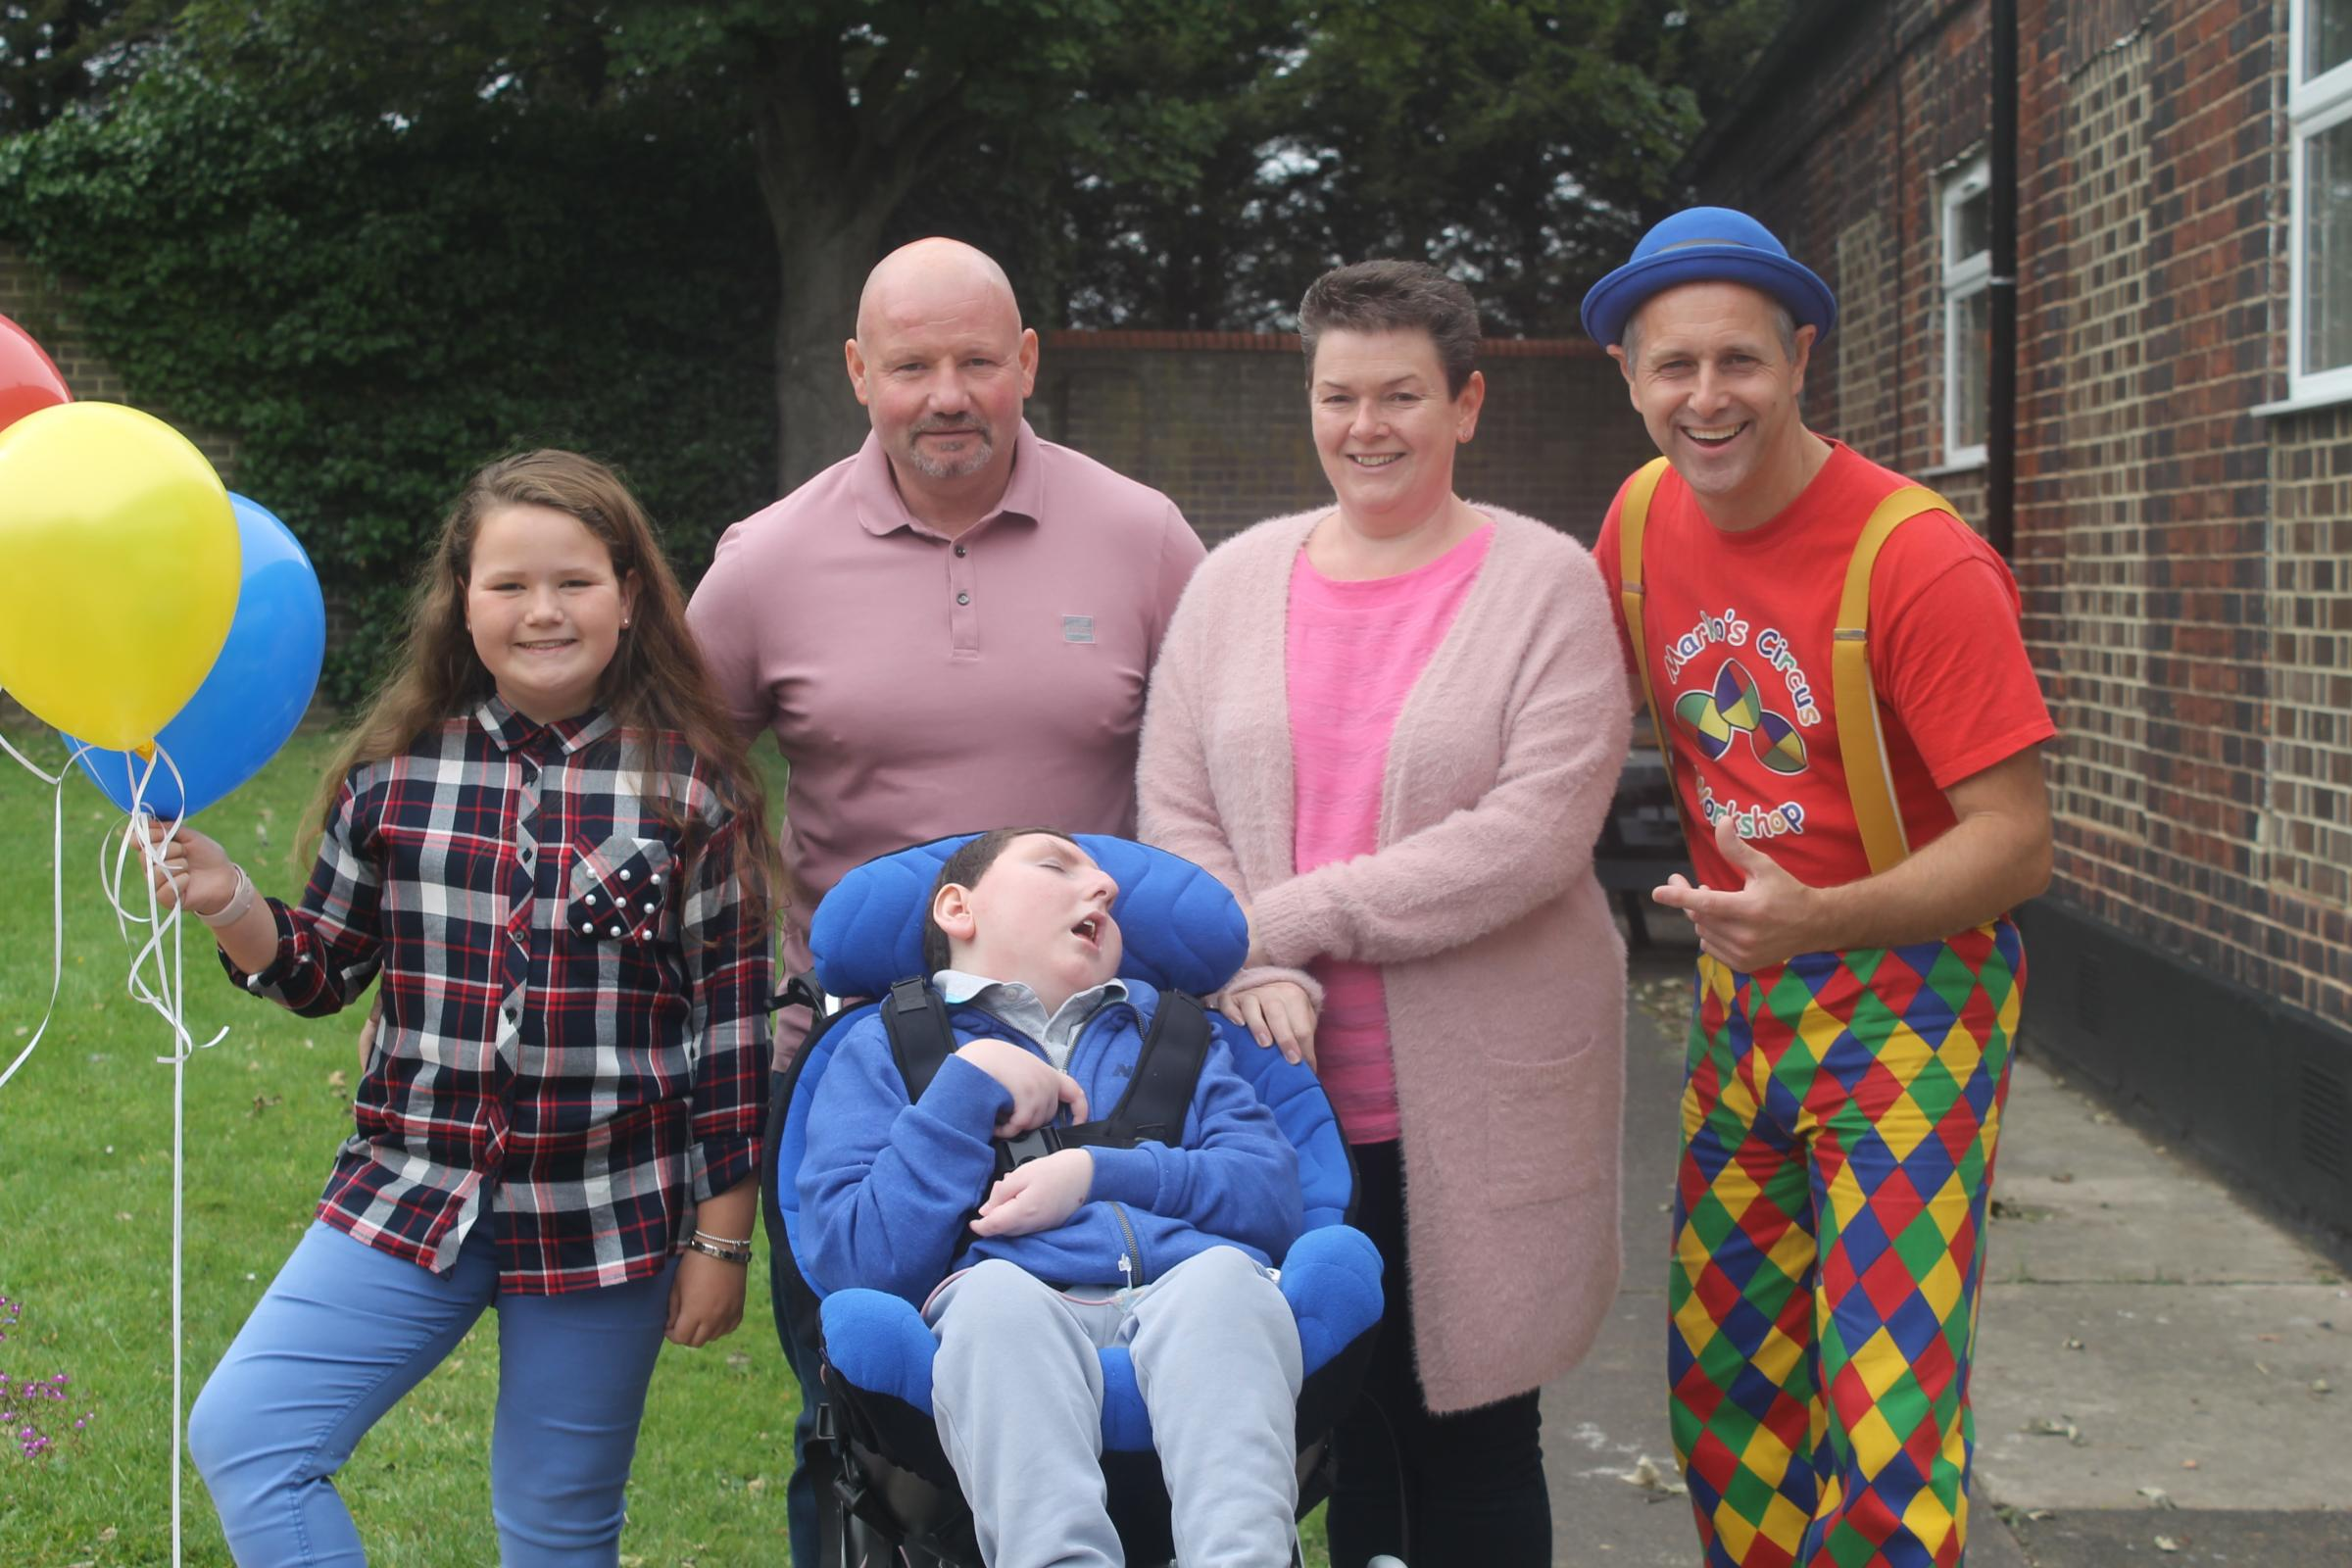 SUPPORT: Reece Parkinson and his family, with Marko, the clown. Pictures: Peter Barron